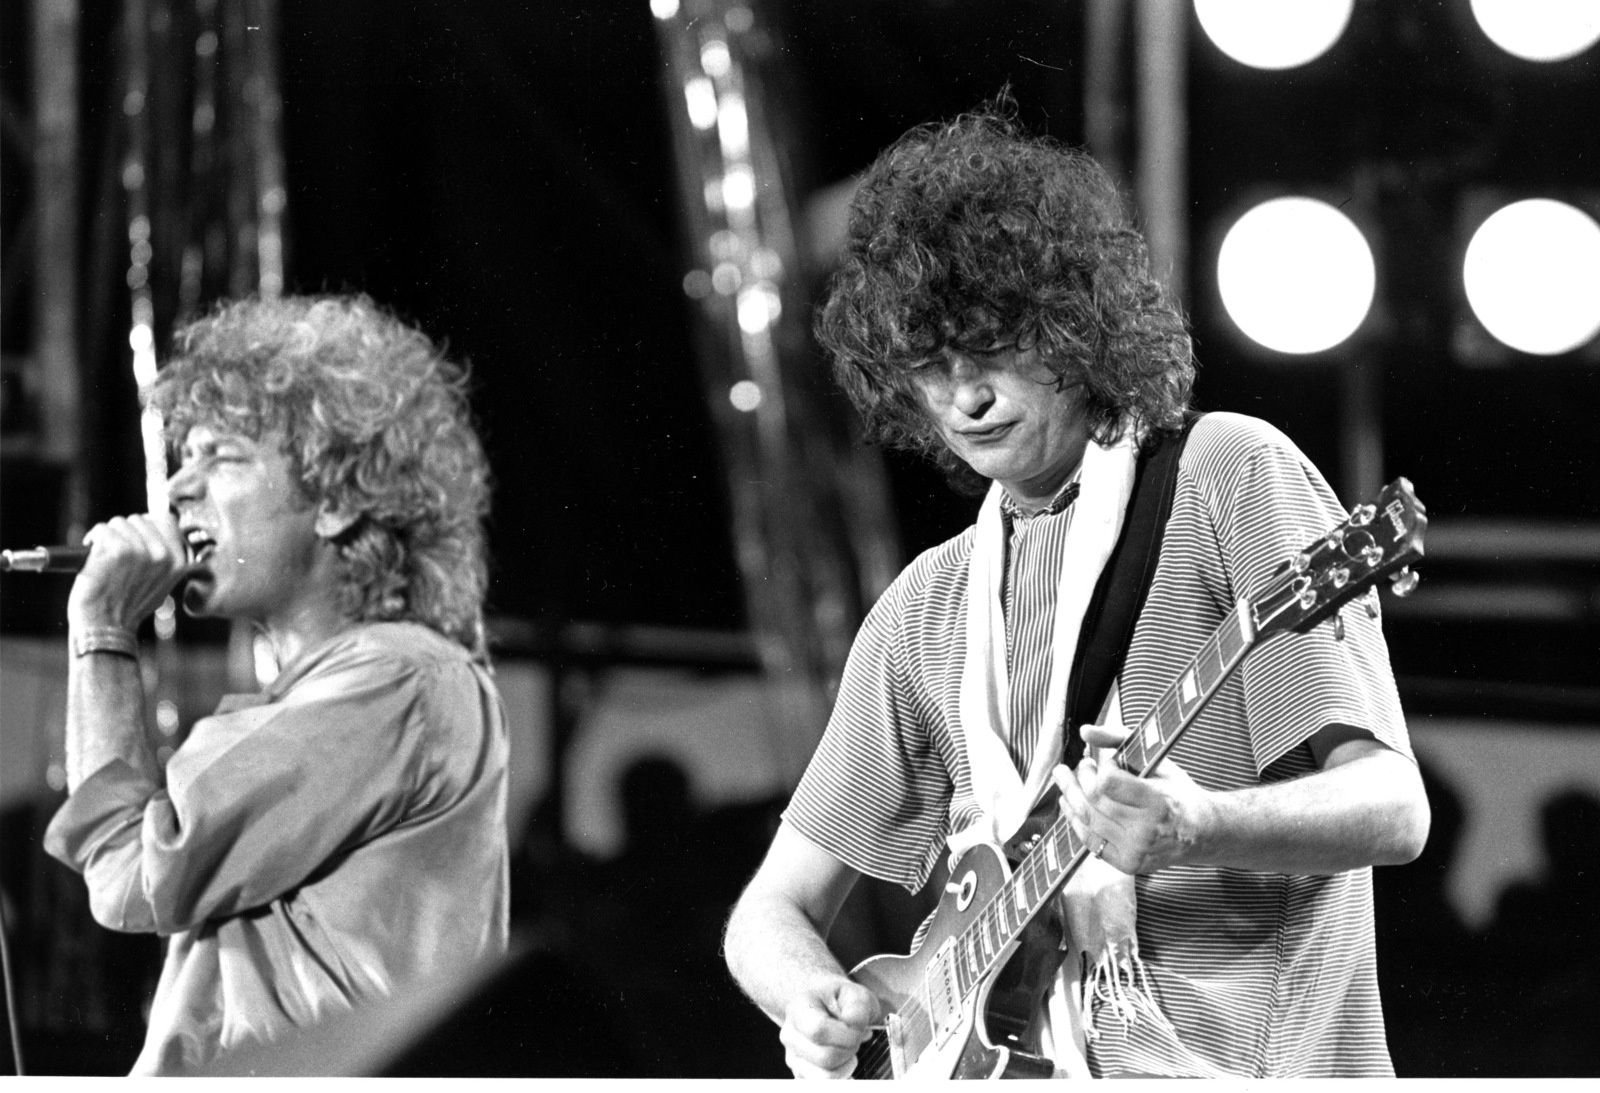 Robert Plant - Led Zeppelin's singer and guitarist Jimmy Page perform during 1985's Live Aid at JFK Stadium in Philadelphia